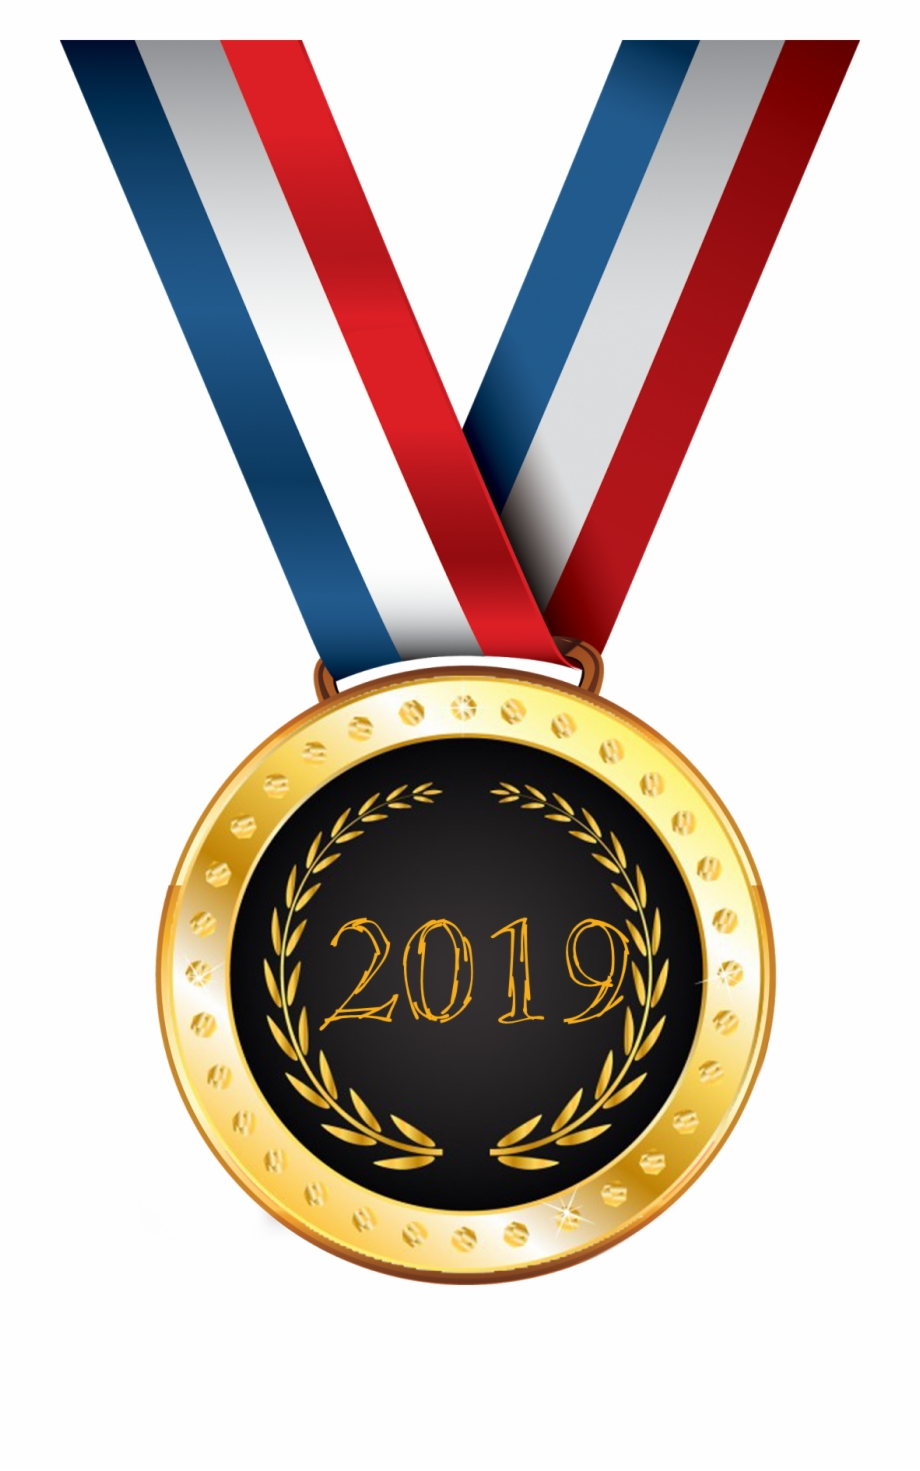 Free medal clipart clipart black and white stock Gold Medal Png Free Images - Medals Ribbons Clip Arts Free PNG ... clipart black and white stock